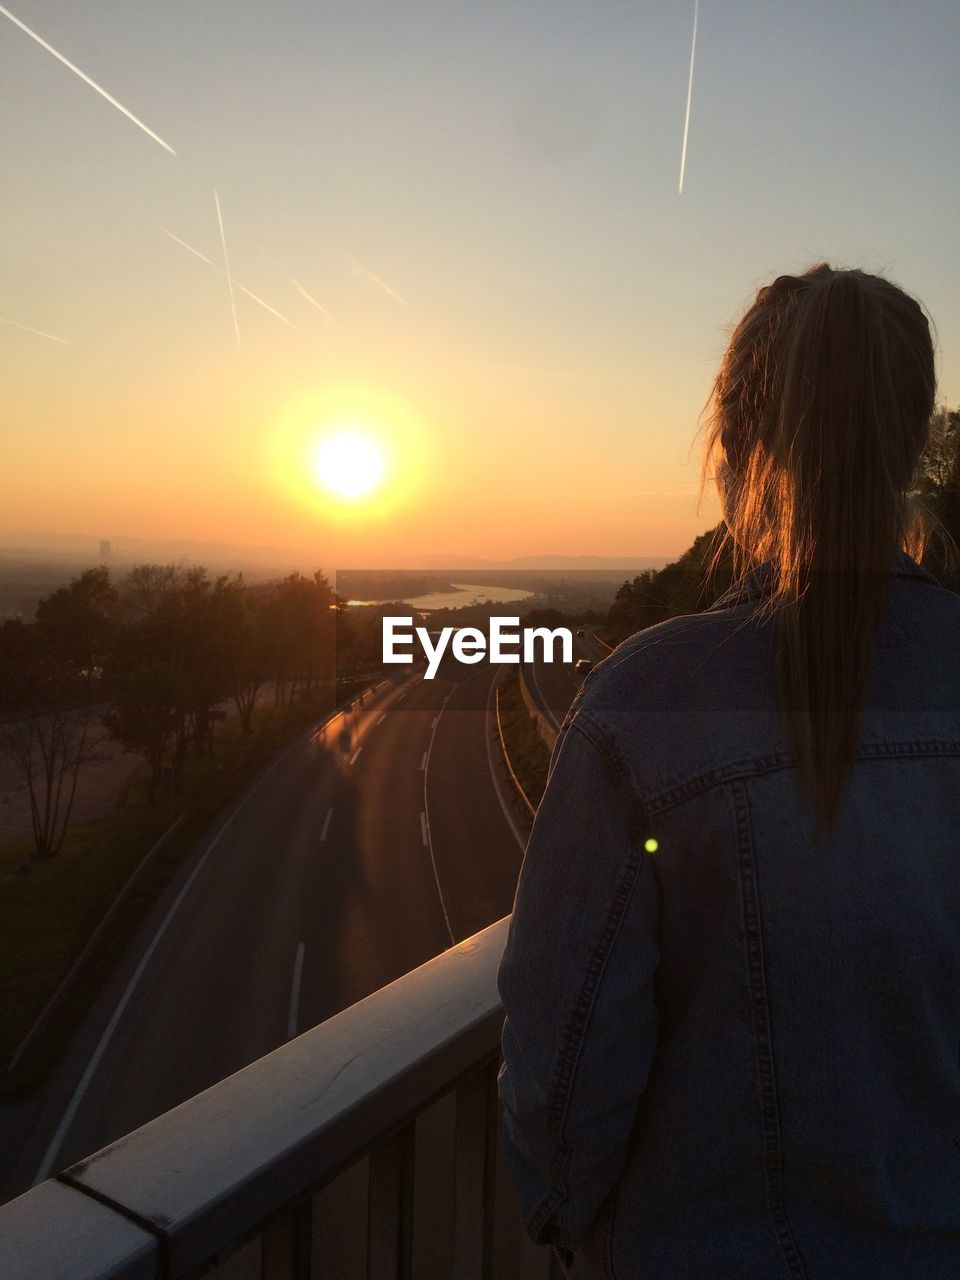 sunset, real people, one person, transportation, rear view, mode of transport, leisure activity, nature, travel, lifestyles, journey, outdoors, sky, road, women, beauty in nature, day, people